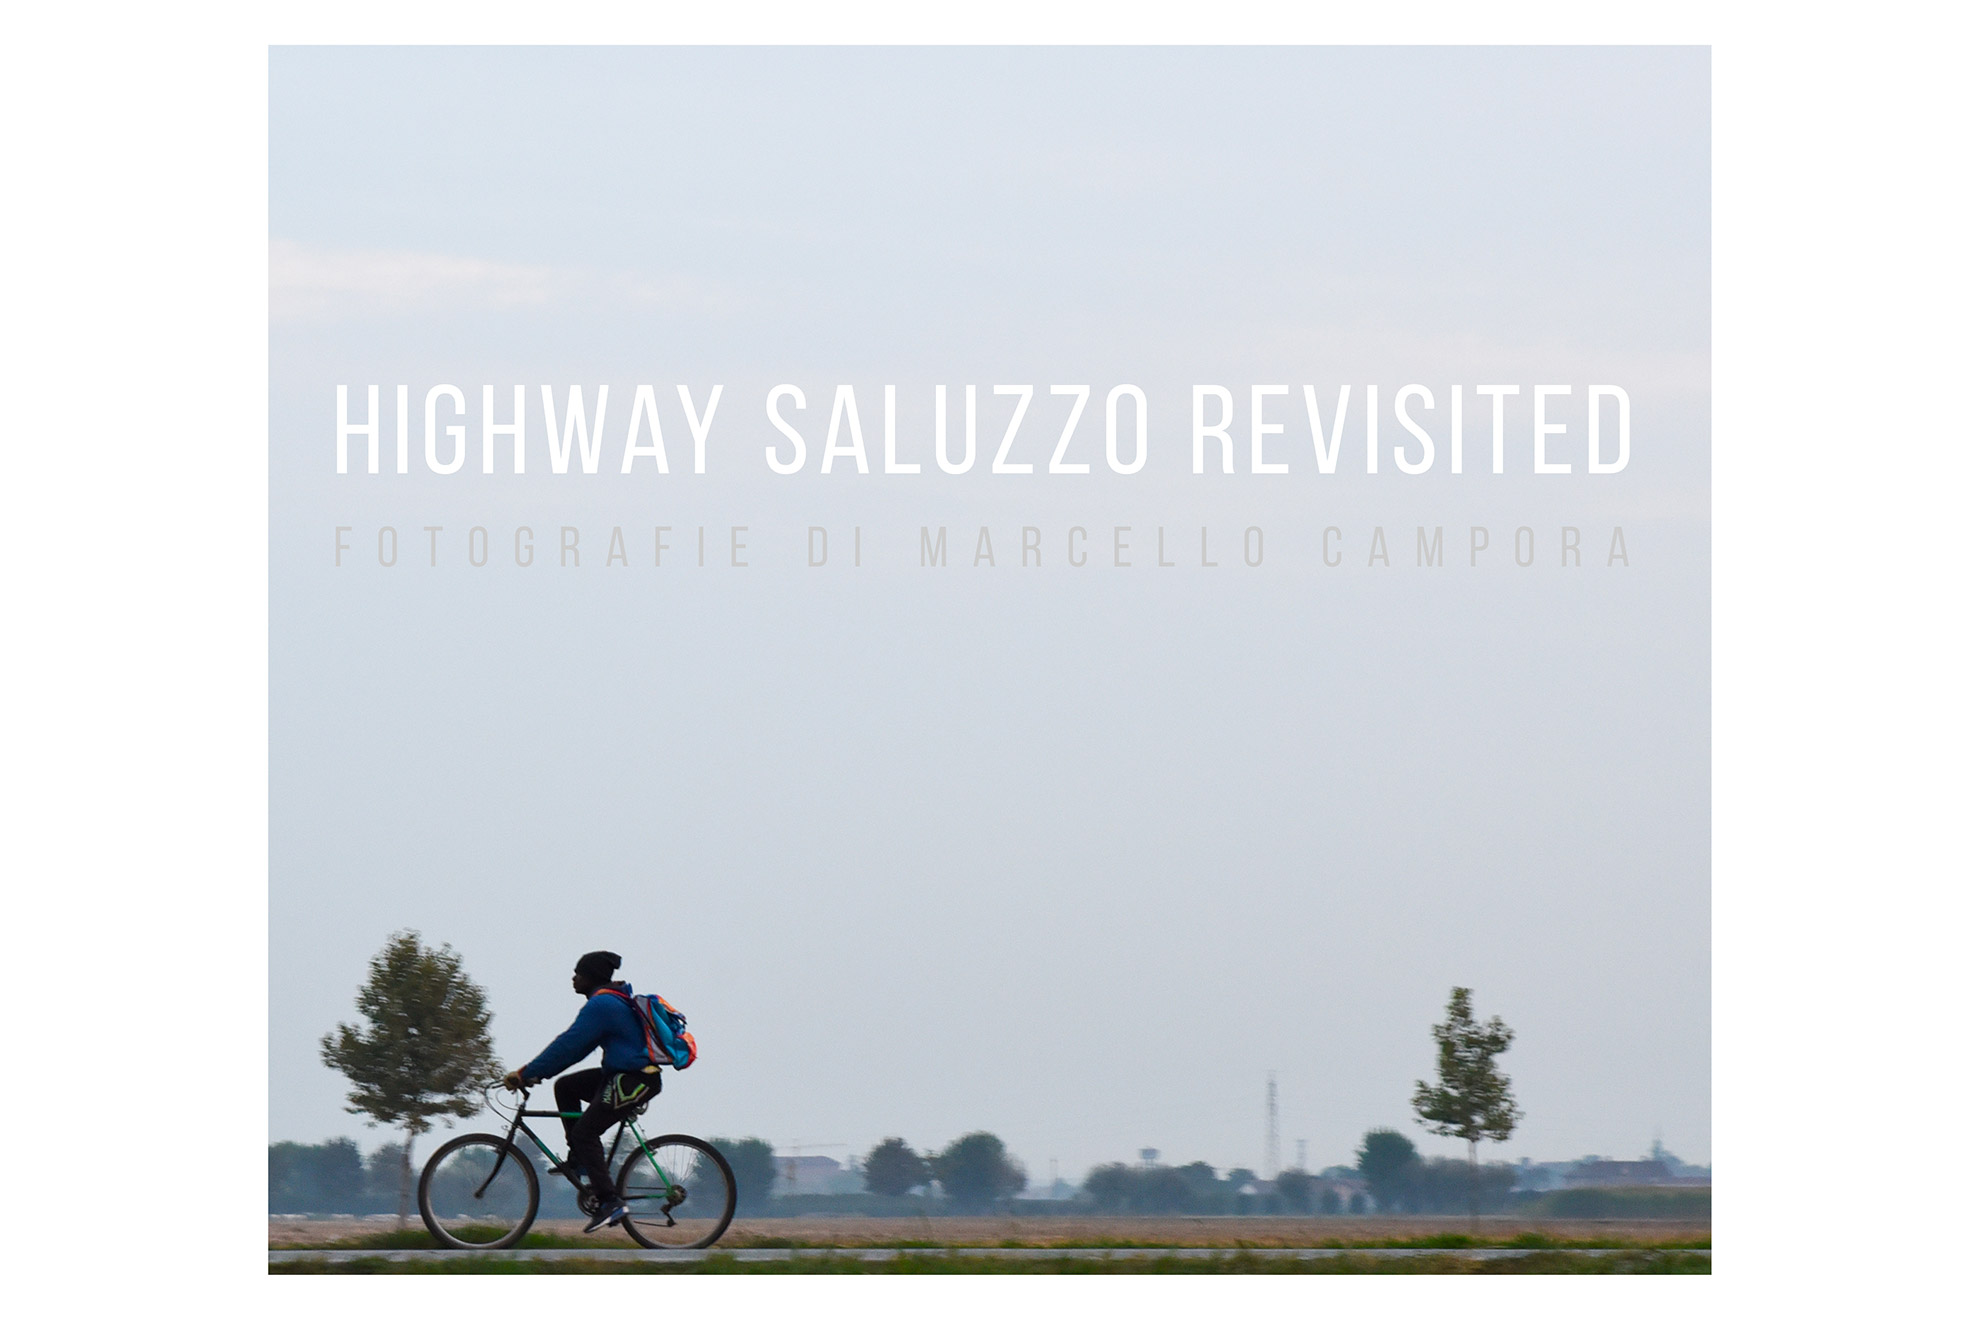 highway saluzzo revisited